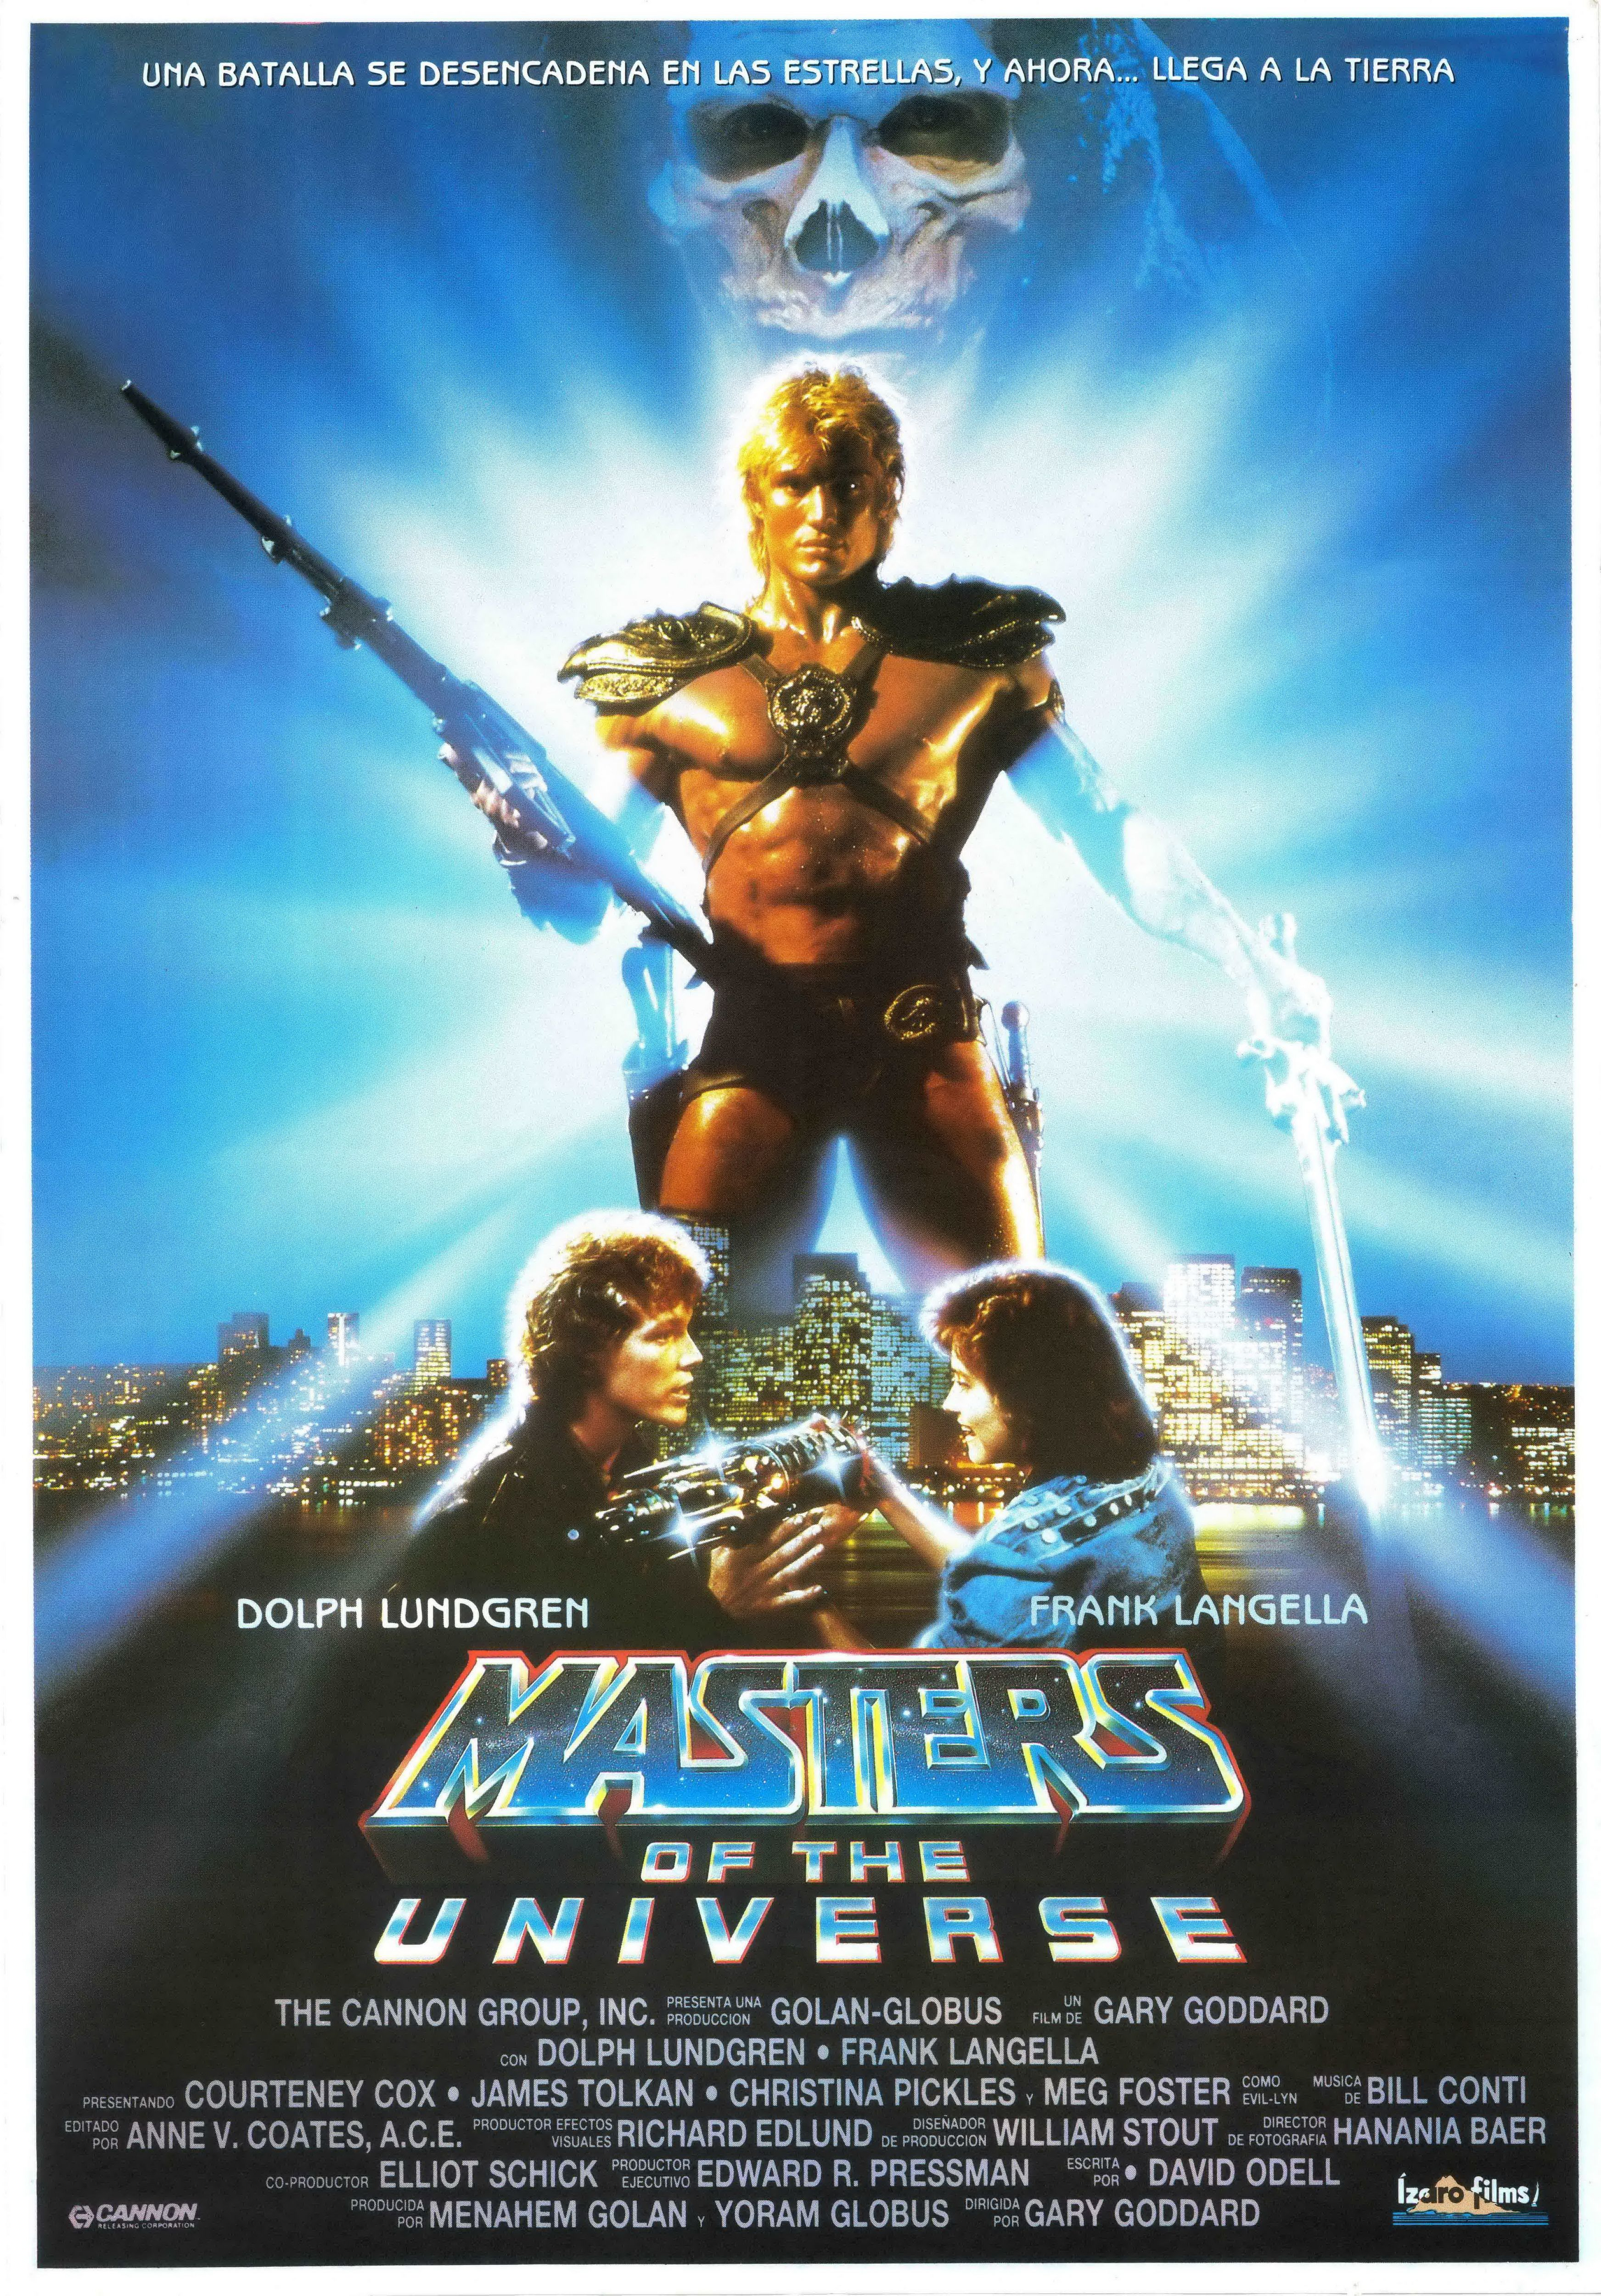 80/'s Vintage Eighties Video Poster HE MAN Poster 18 24 inch X 25 inch